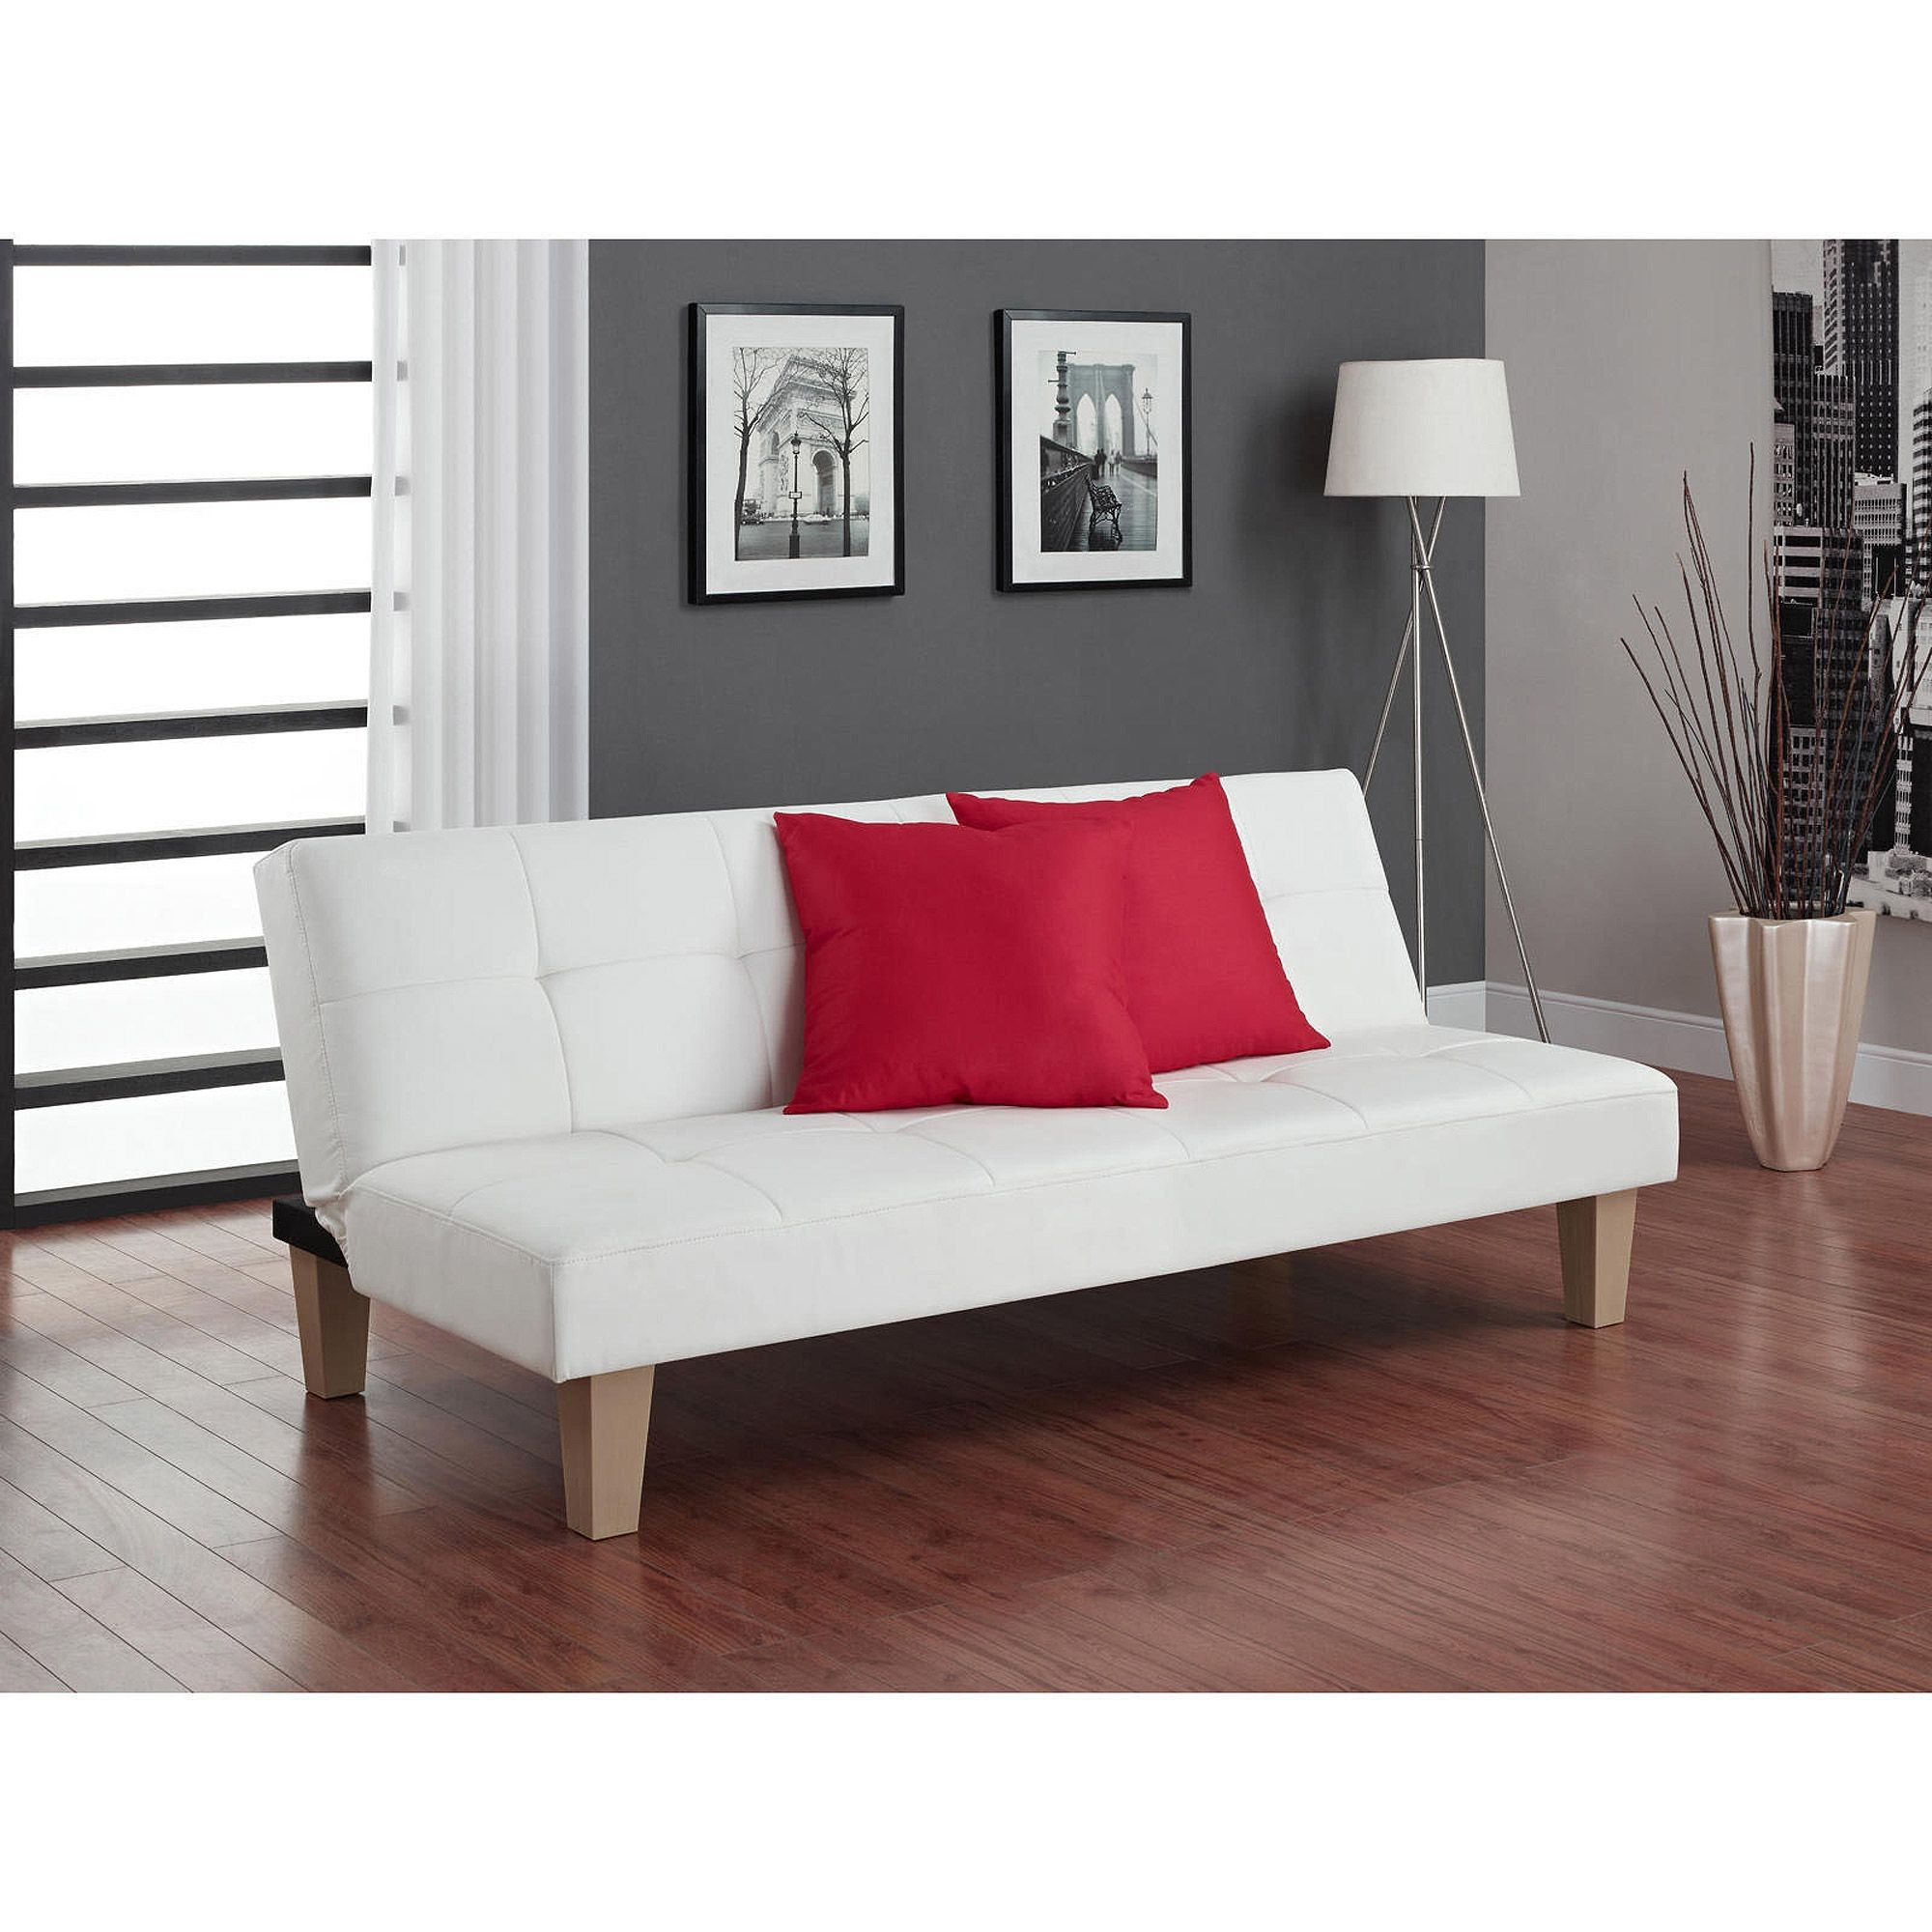 White Futon Living Room Set | http://intrinsiclifedesign.com ...